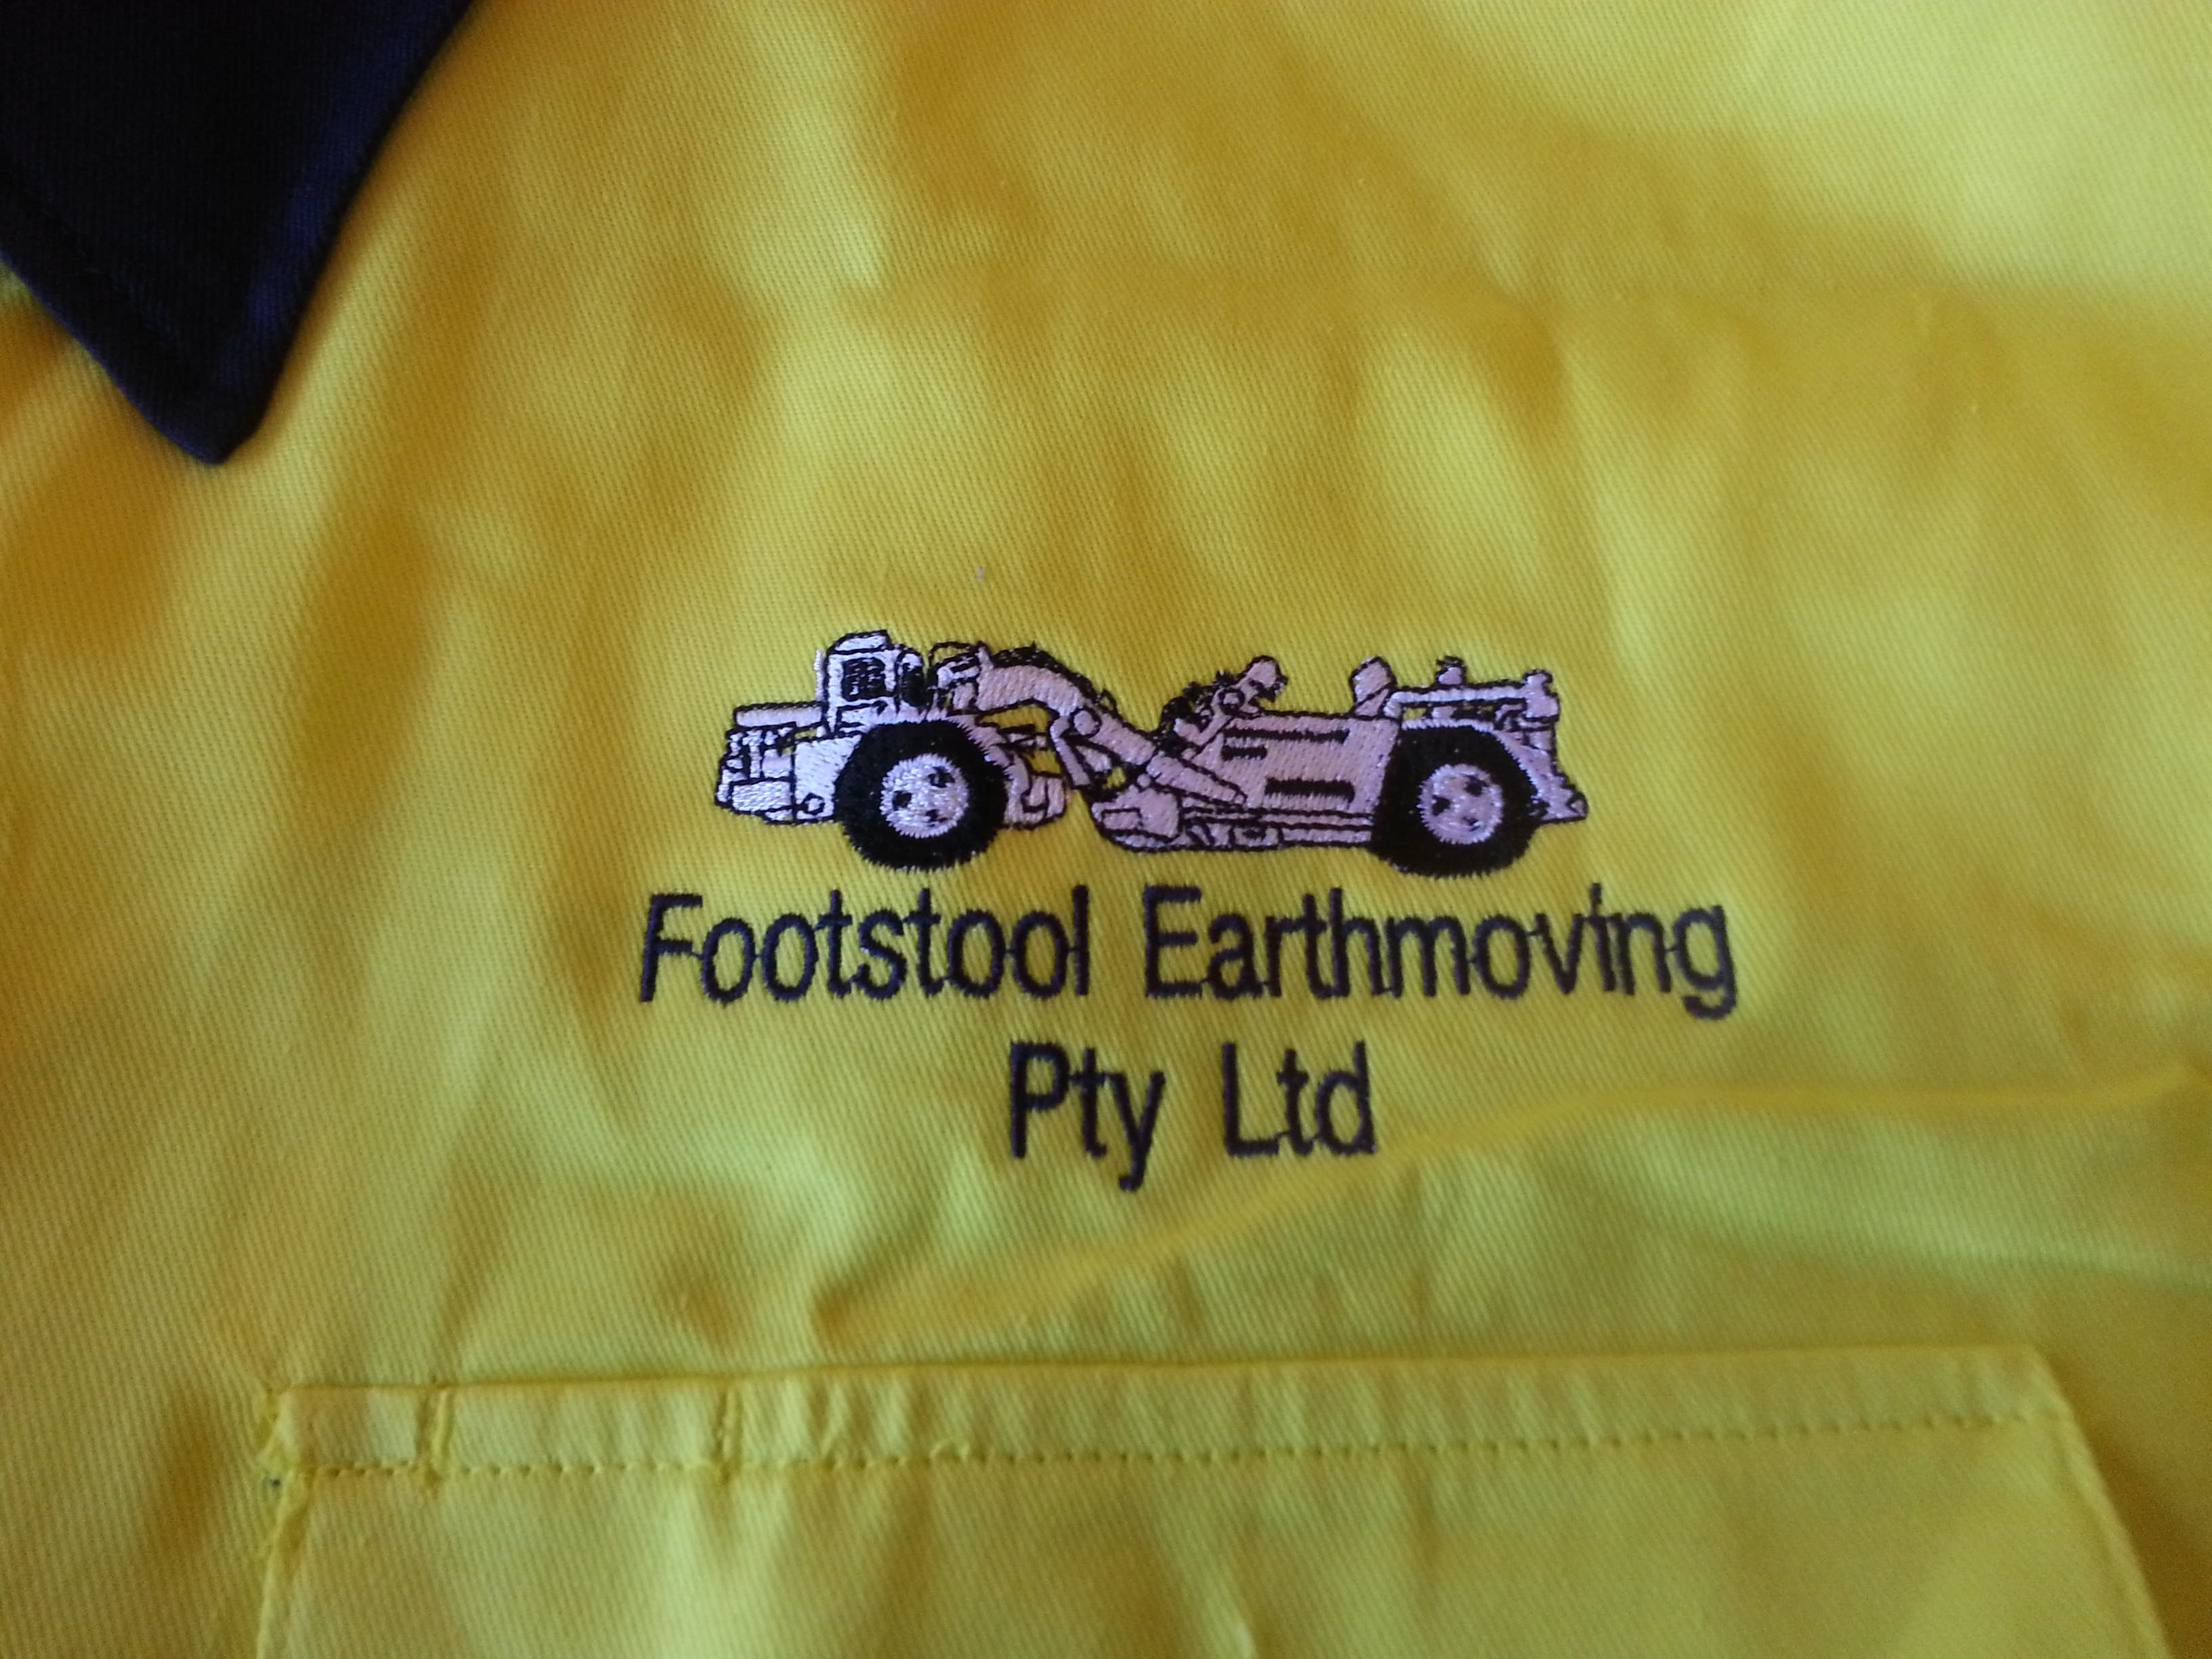 Footstool Earthmoving Pty Ltd